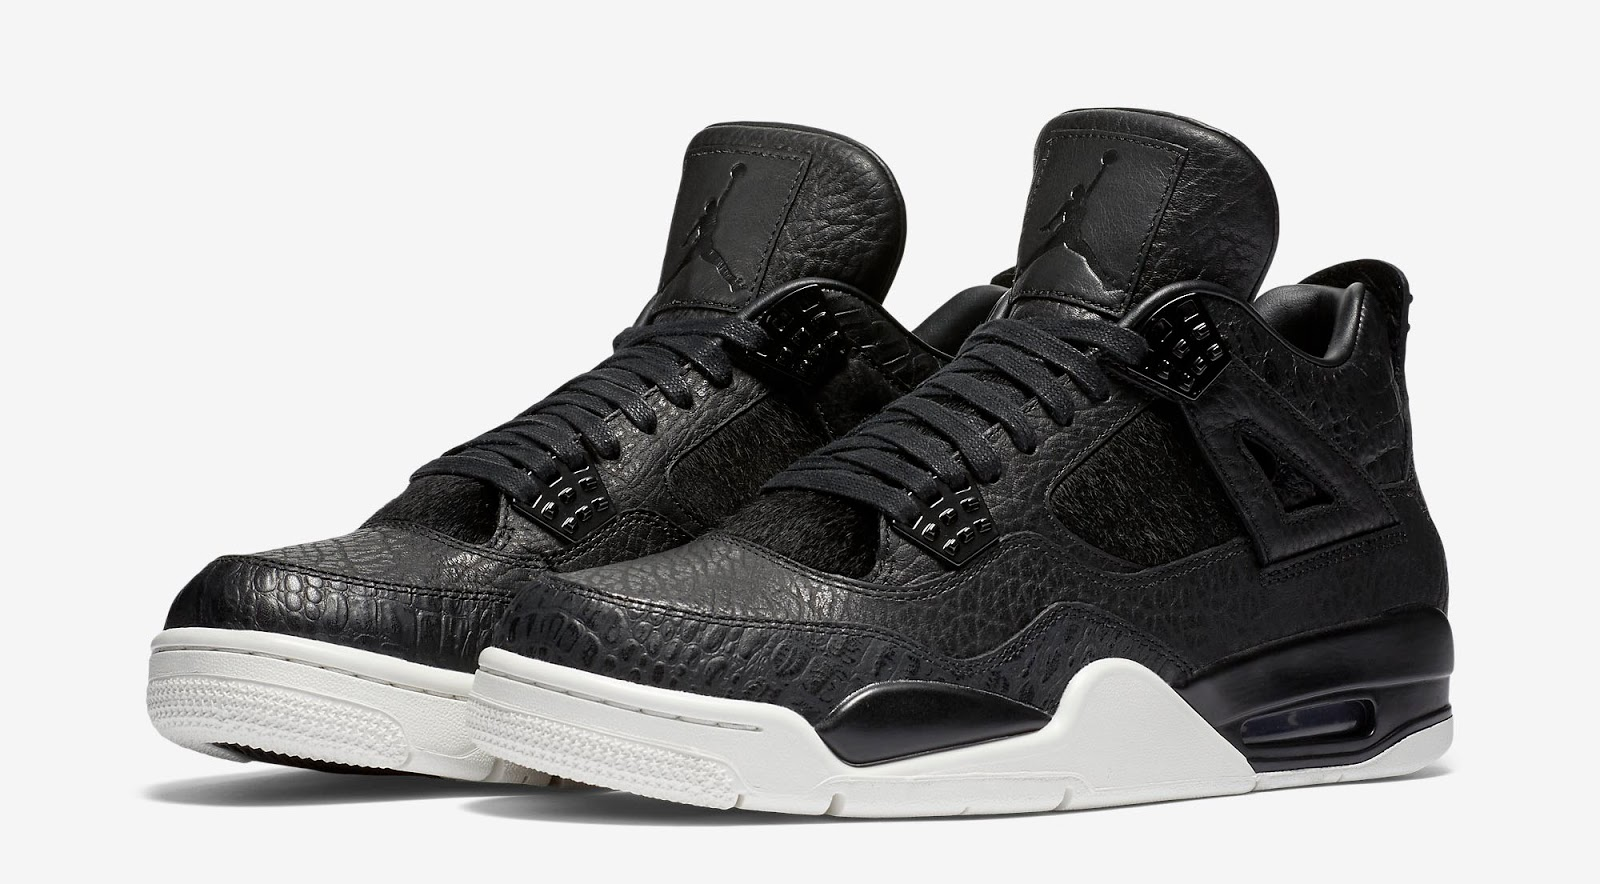 4e45462d86236c This is the first Air Jordan 4 Retro Premium release of 2016. They come in  a black